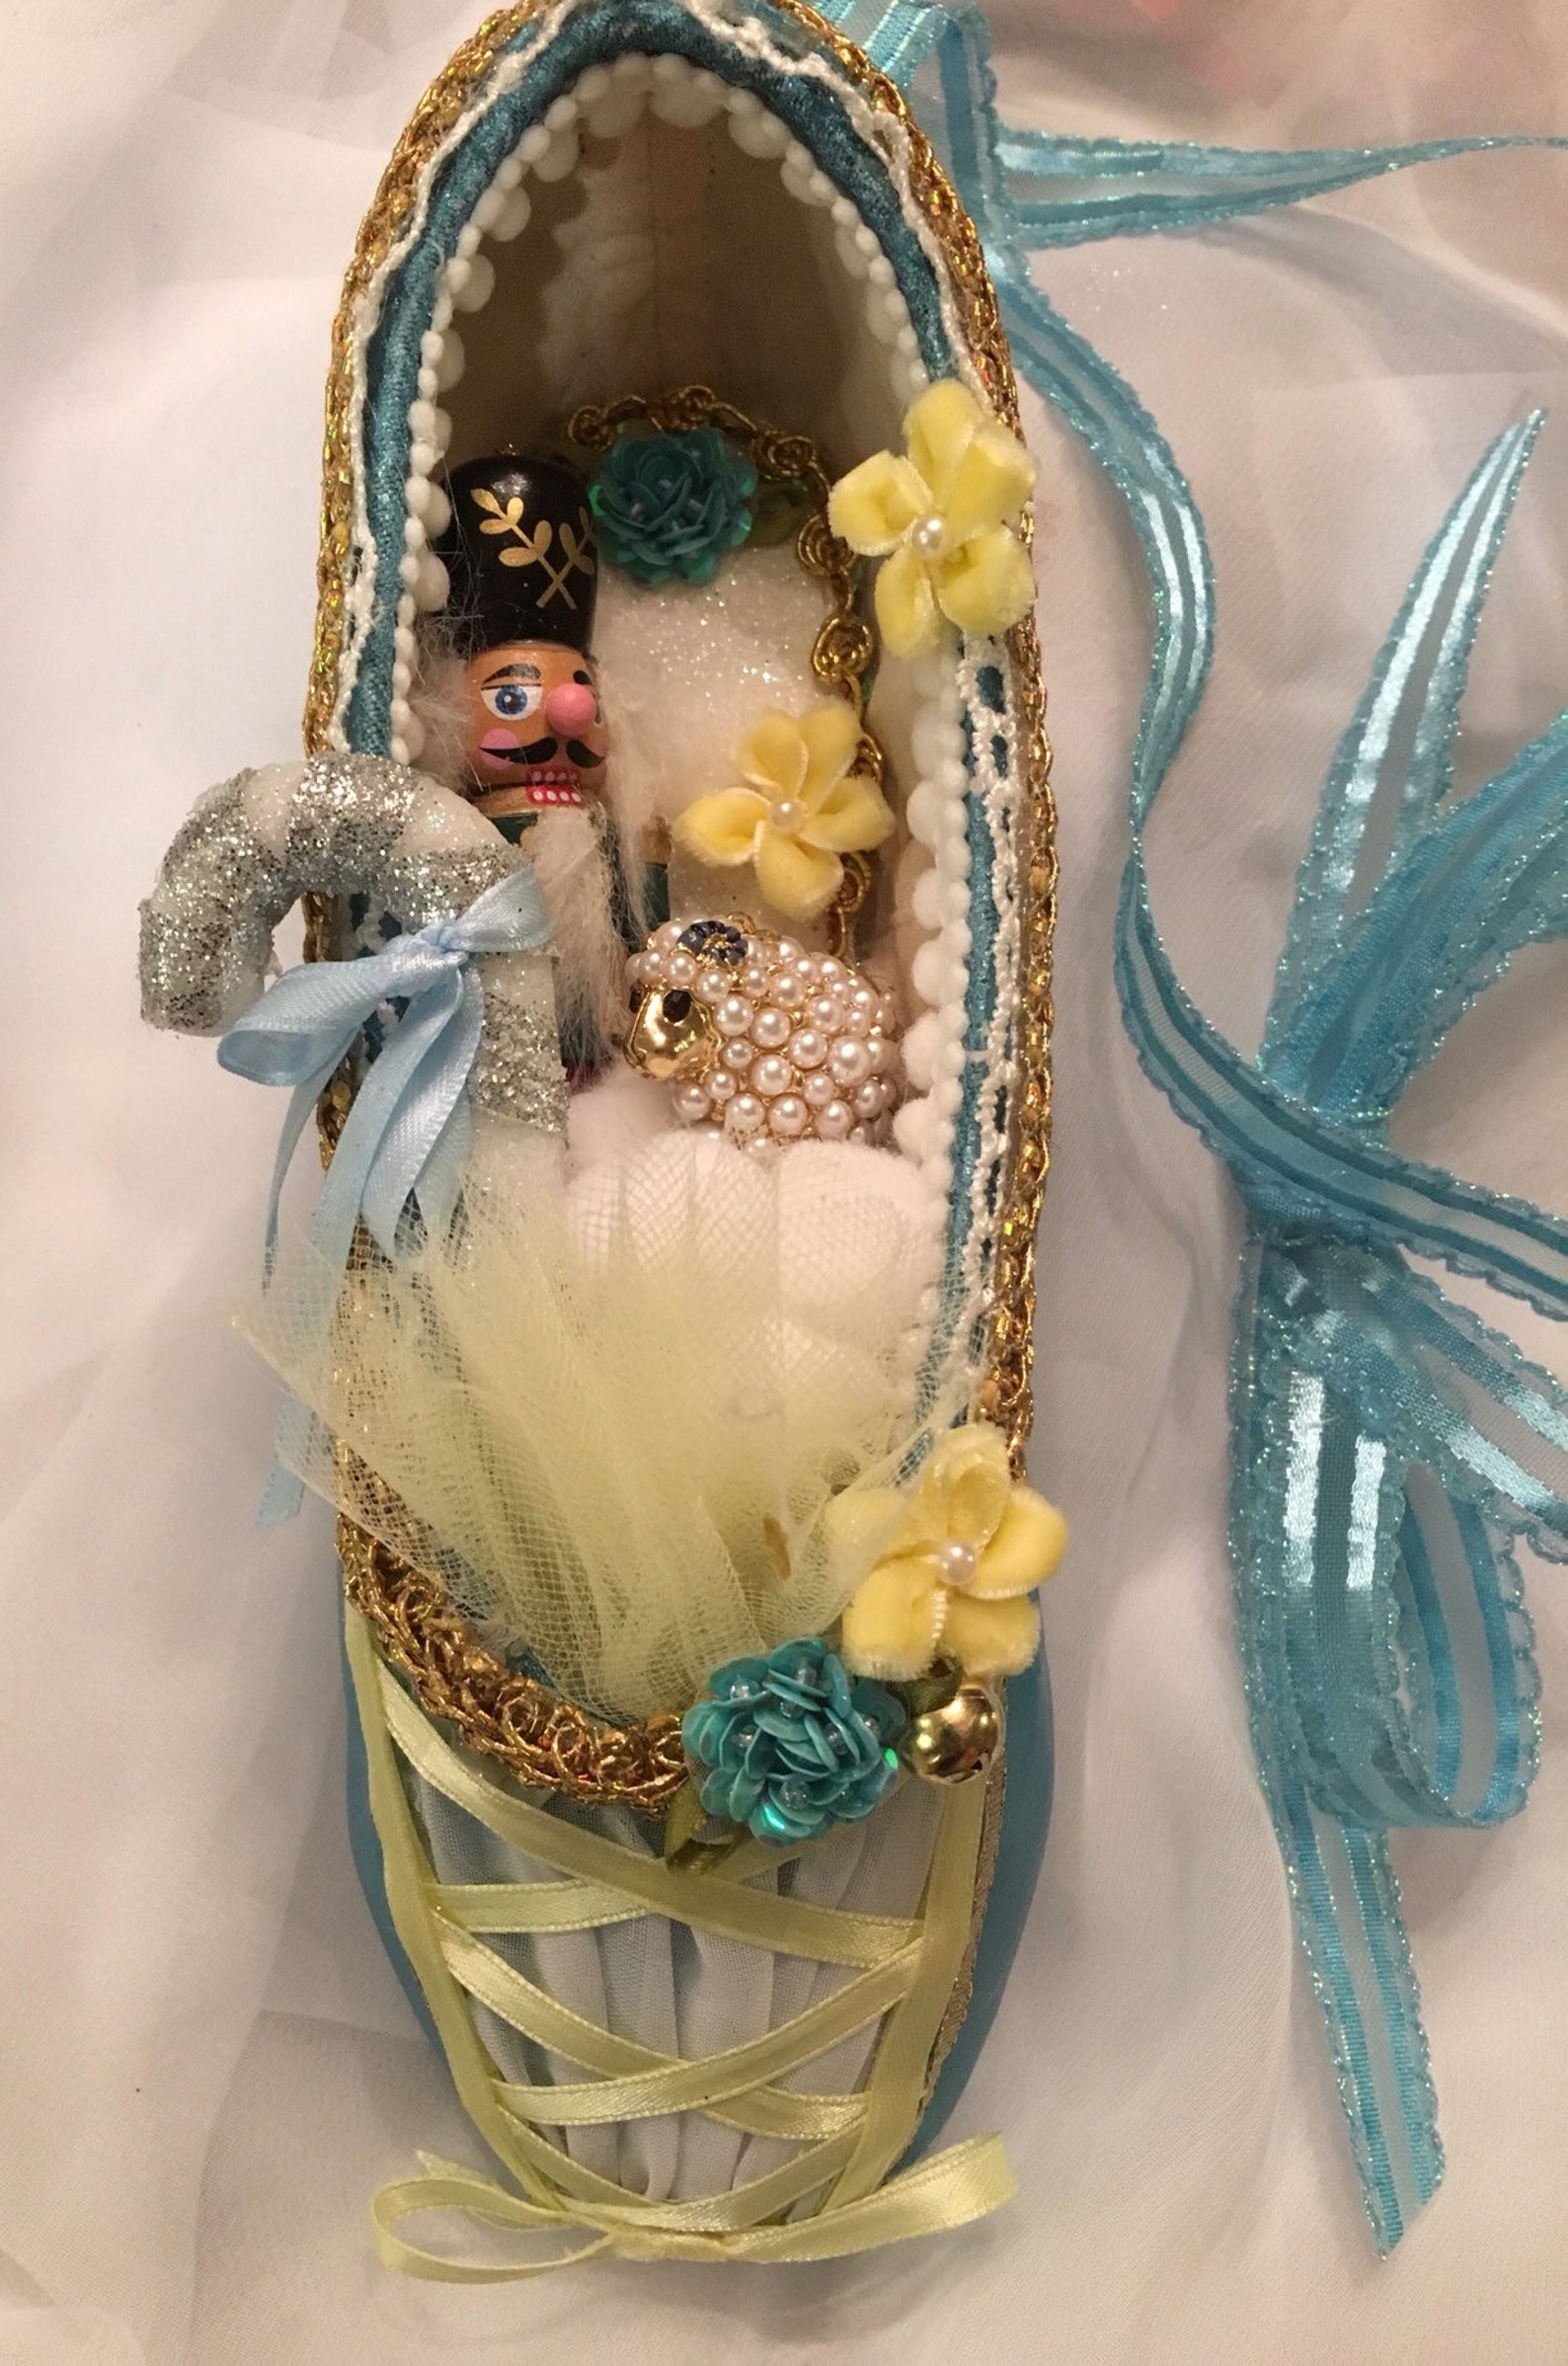 cusomized decorated pointe shoe for nutcracker and yagp or other ballet or theater performances etc..